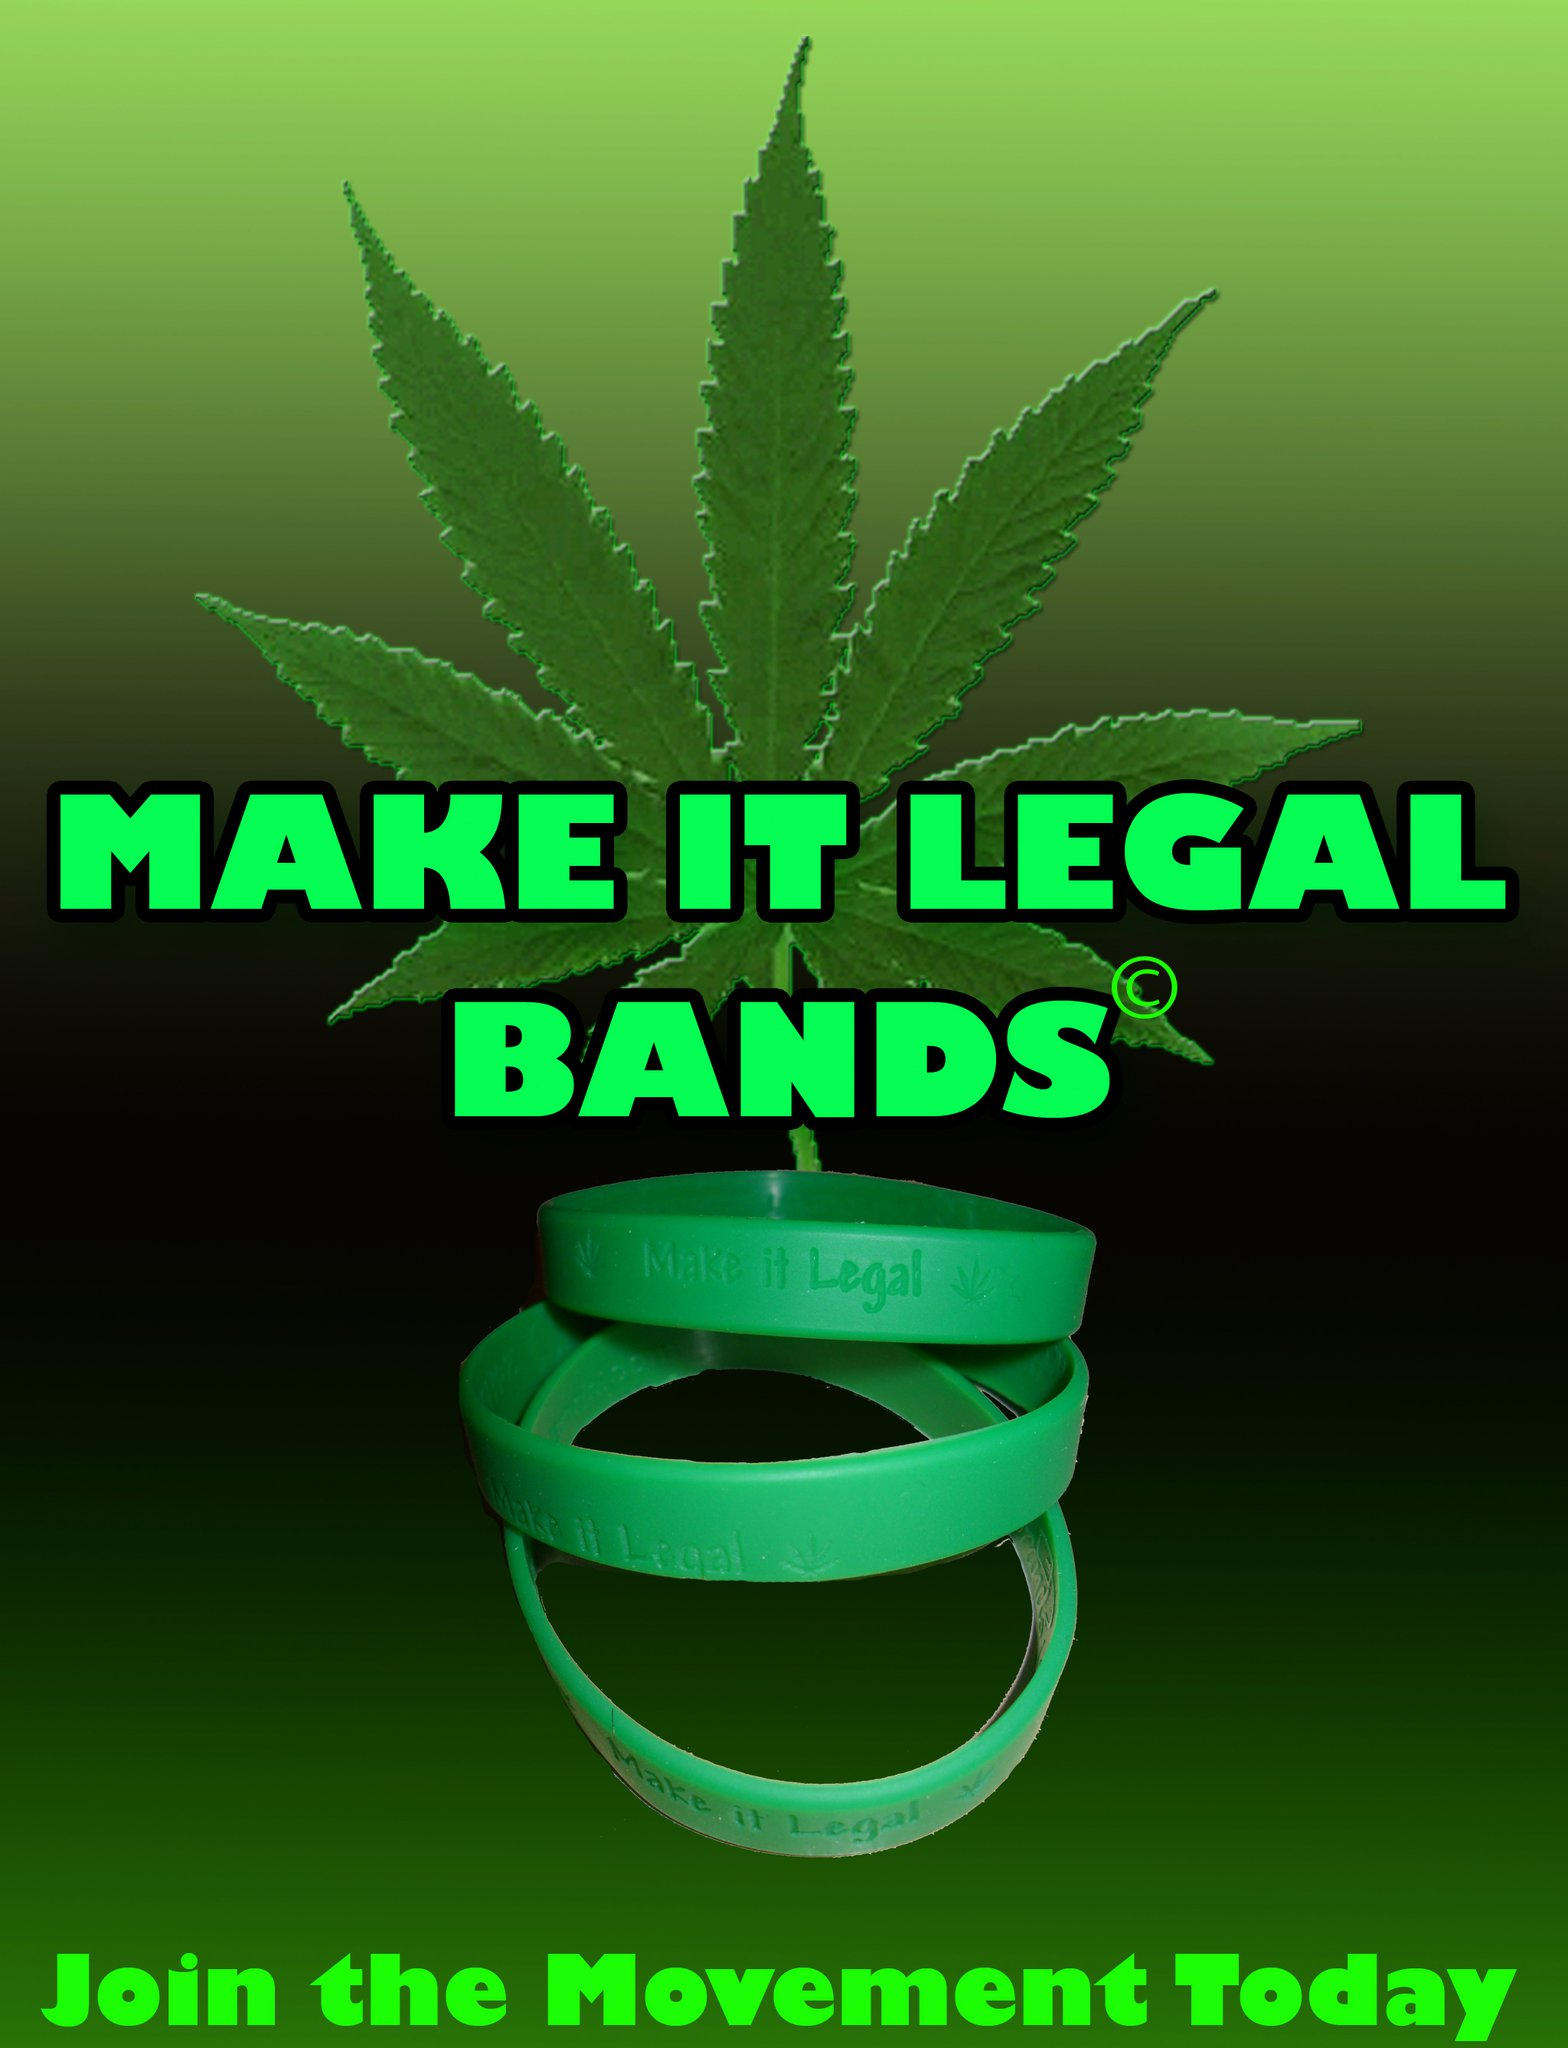 Make It Legal Bands